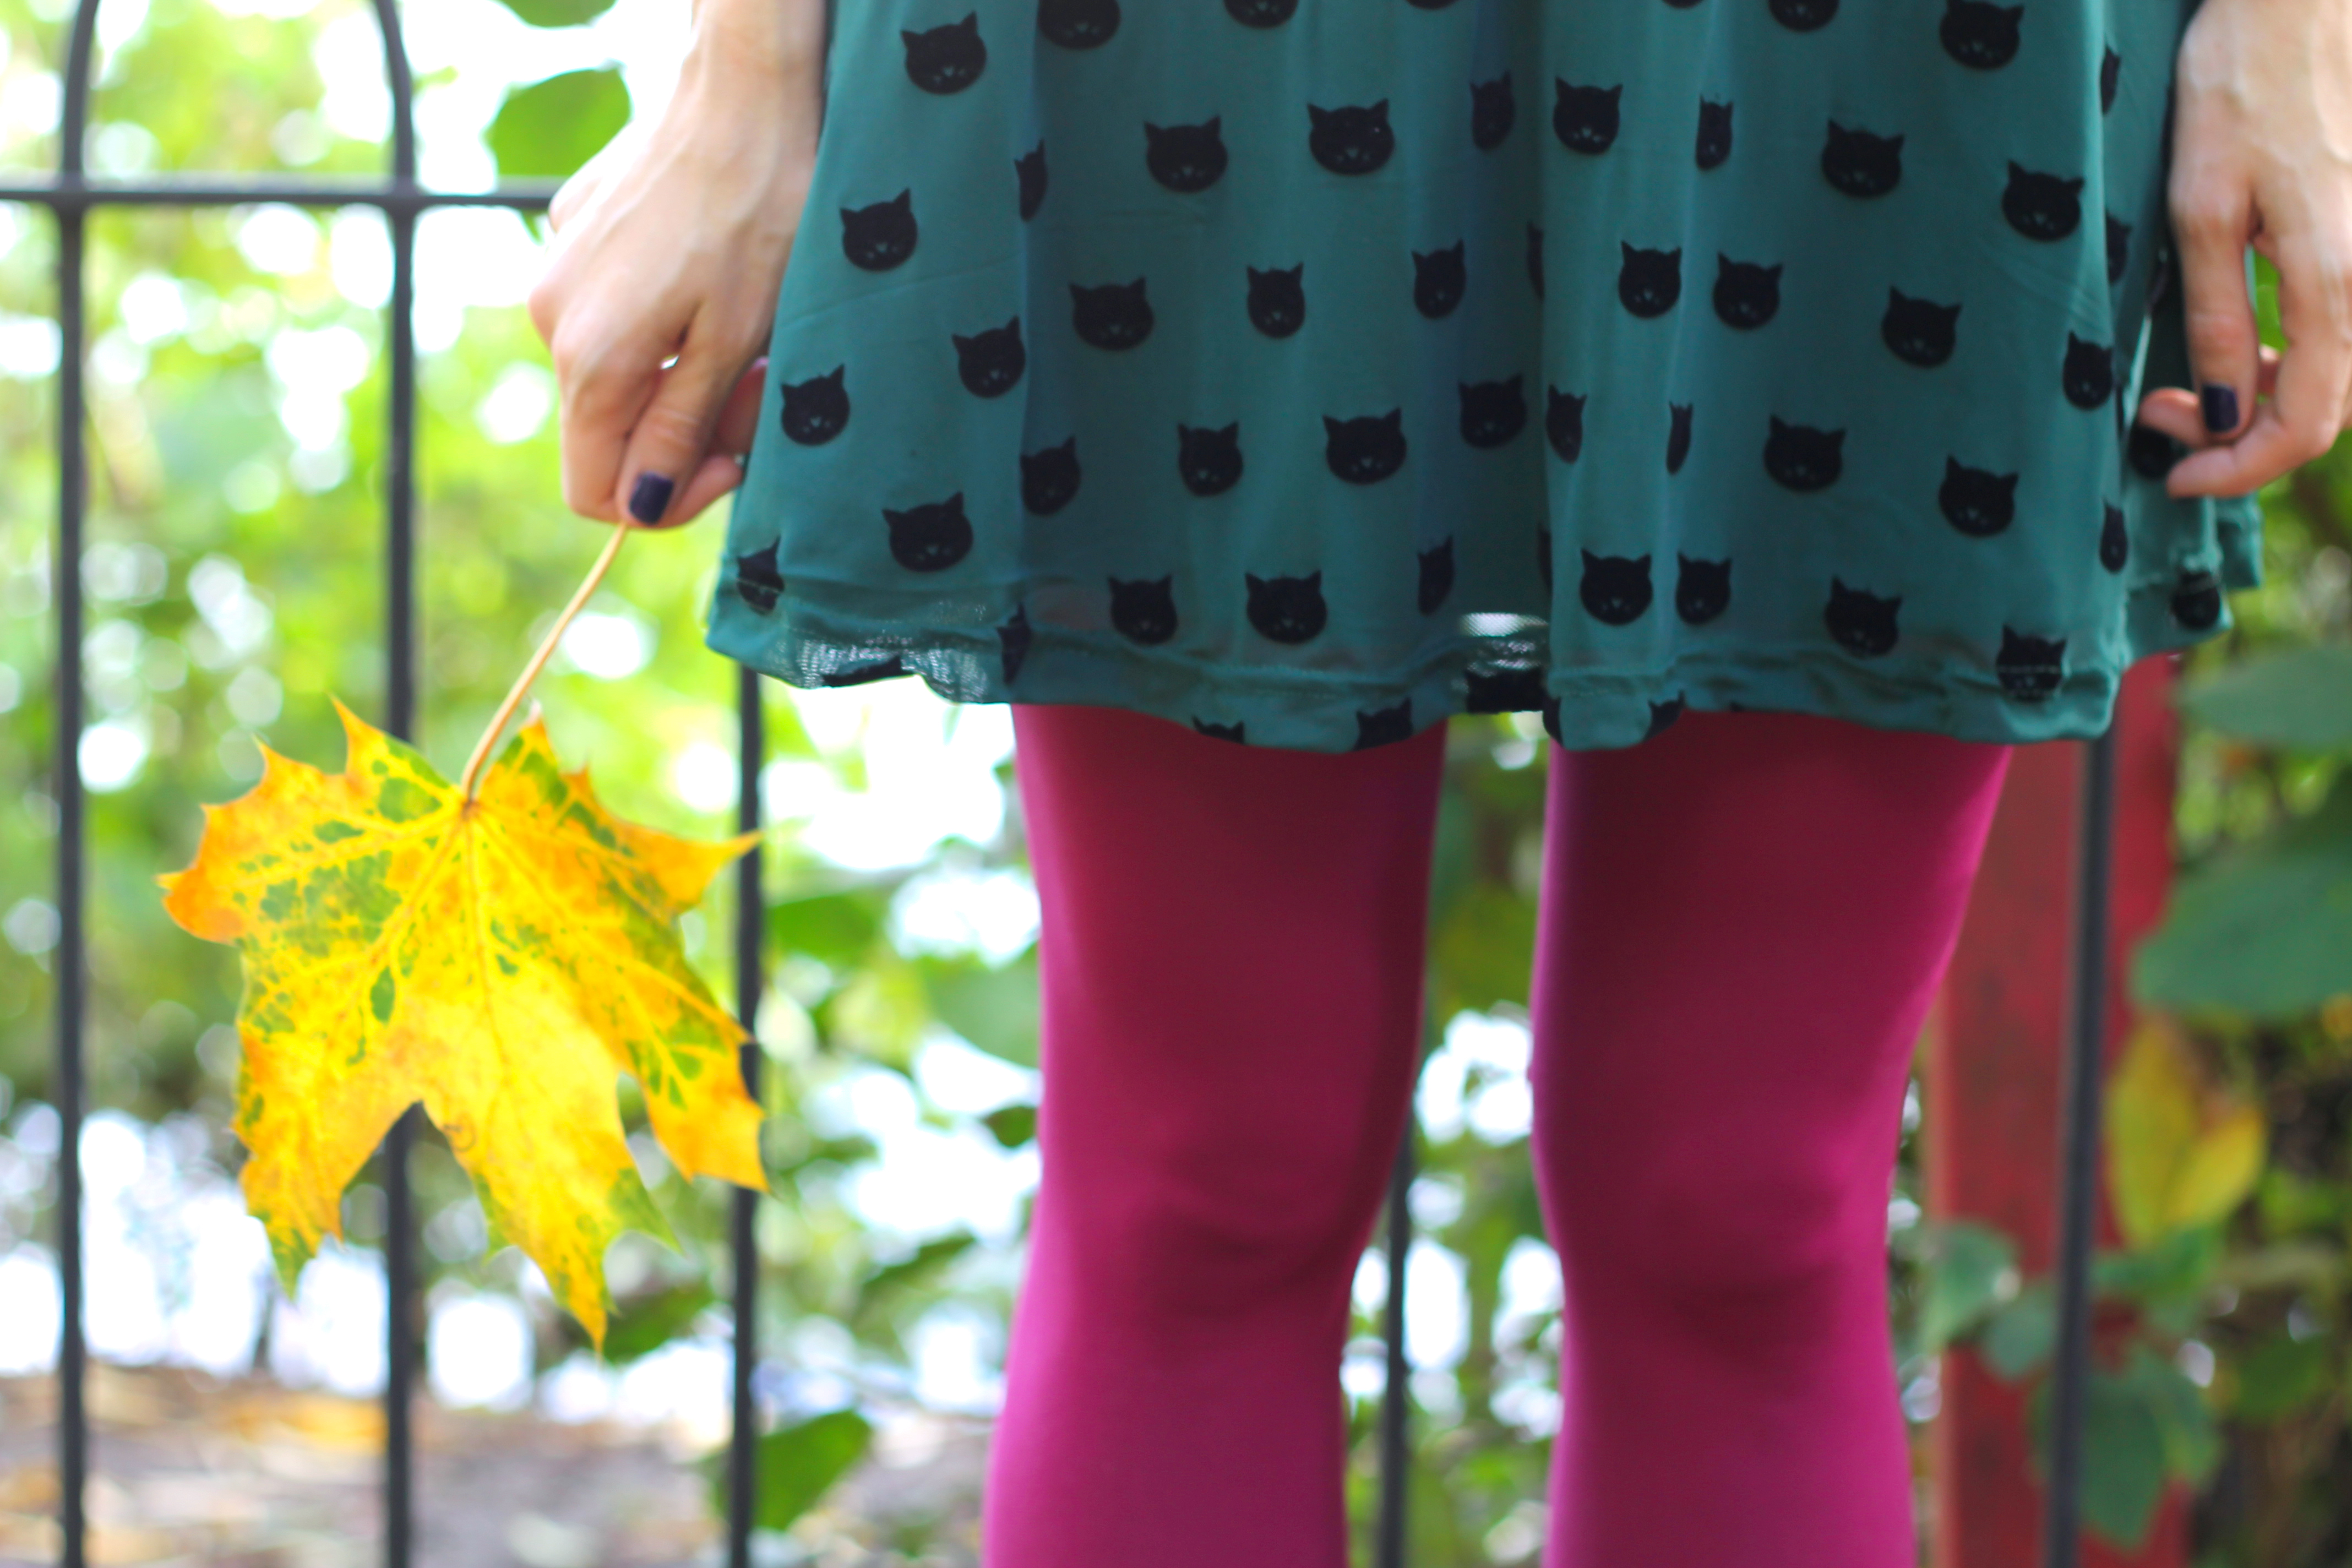 girl in pink tights and a green dress holding a yellow leaf